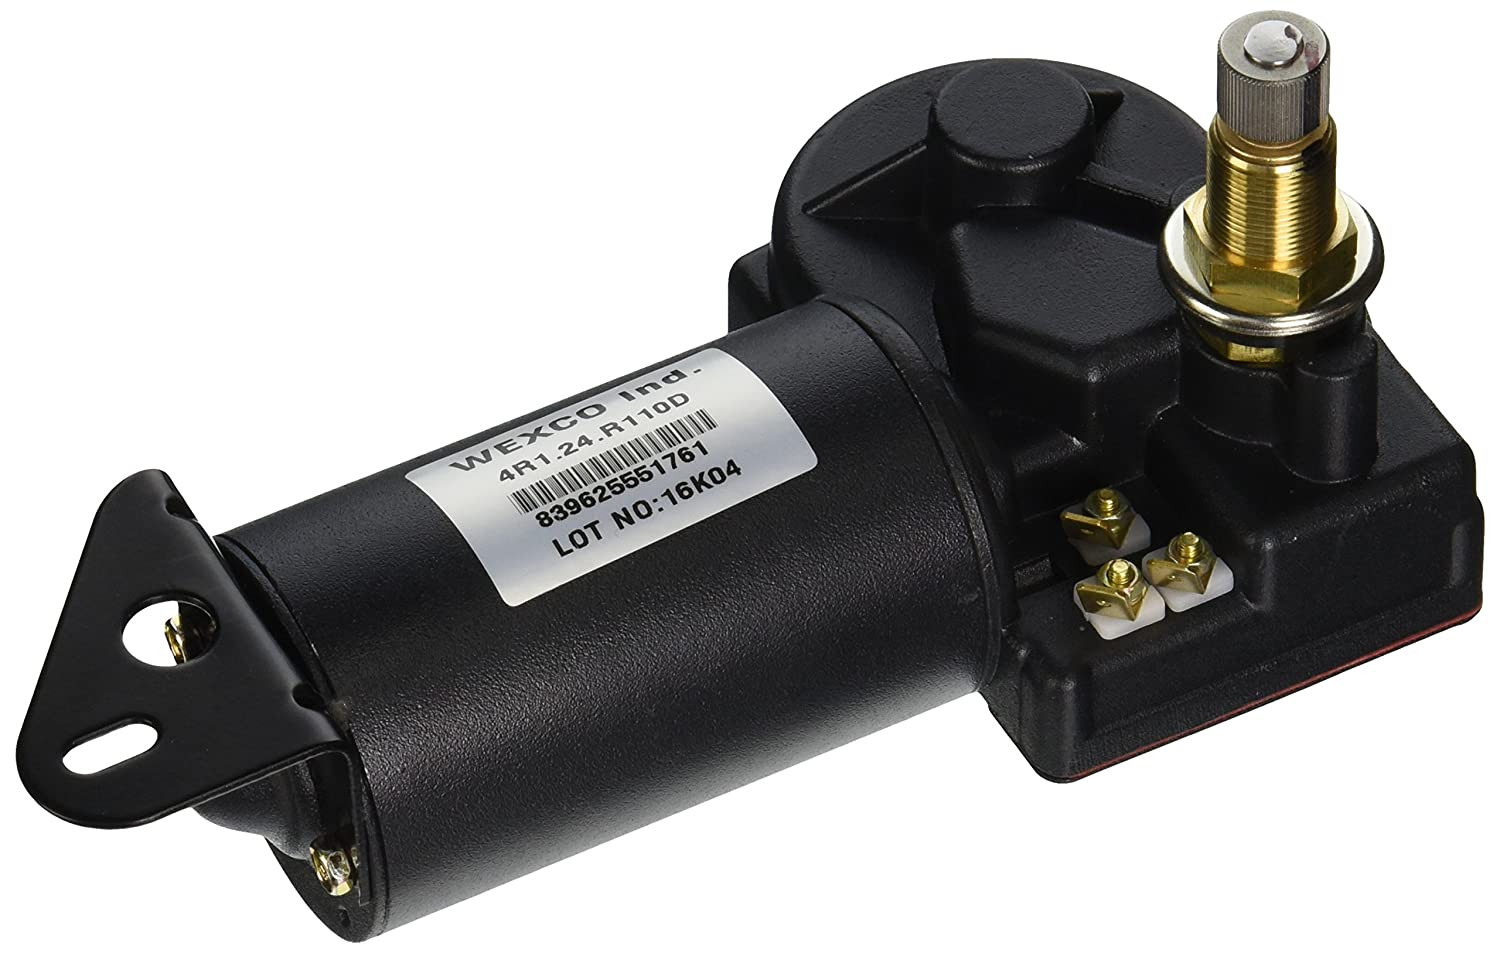 12V Wexco 4R2.12-19S2.R110D 2.5 Wiper Motor with 2-Speed Switch